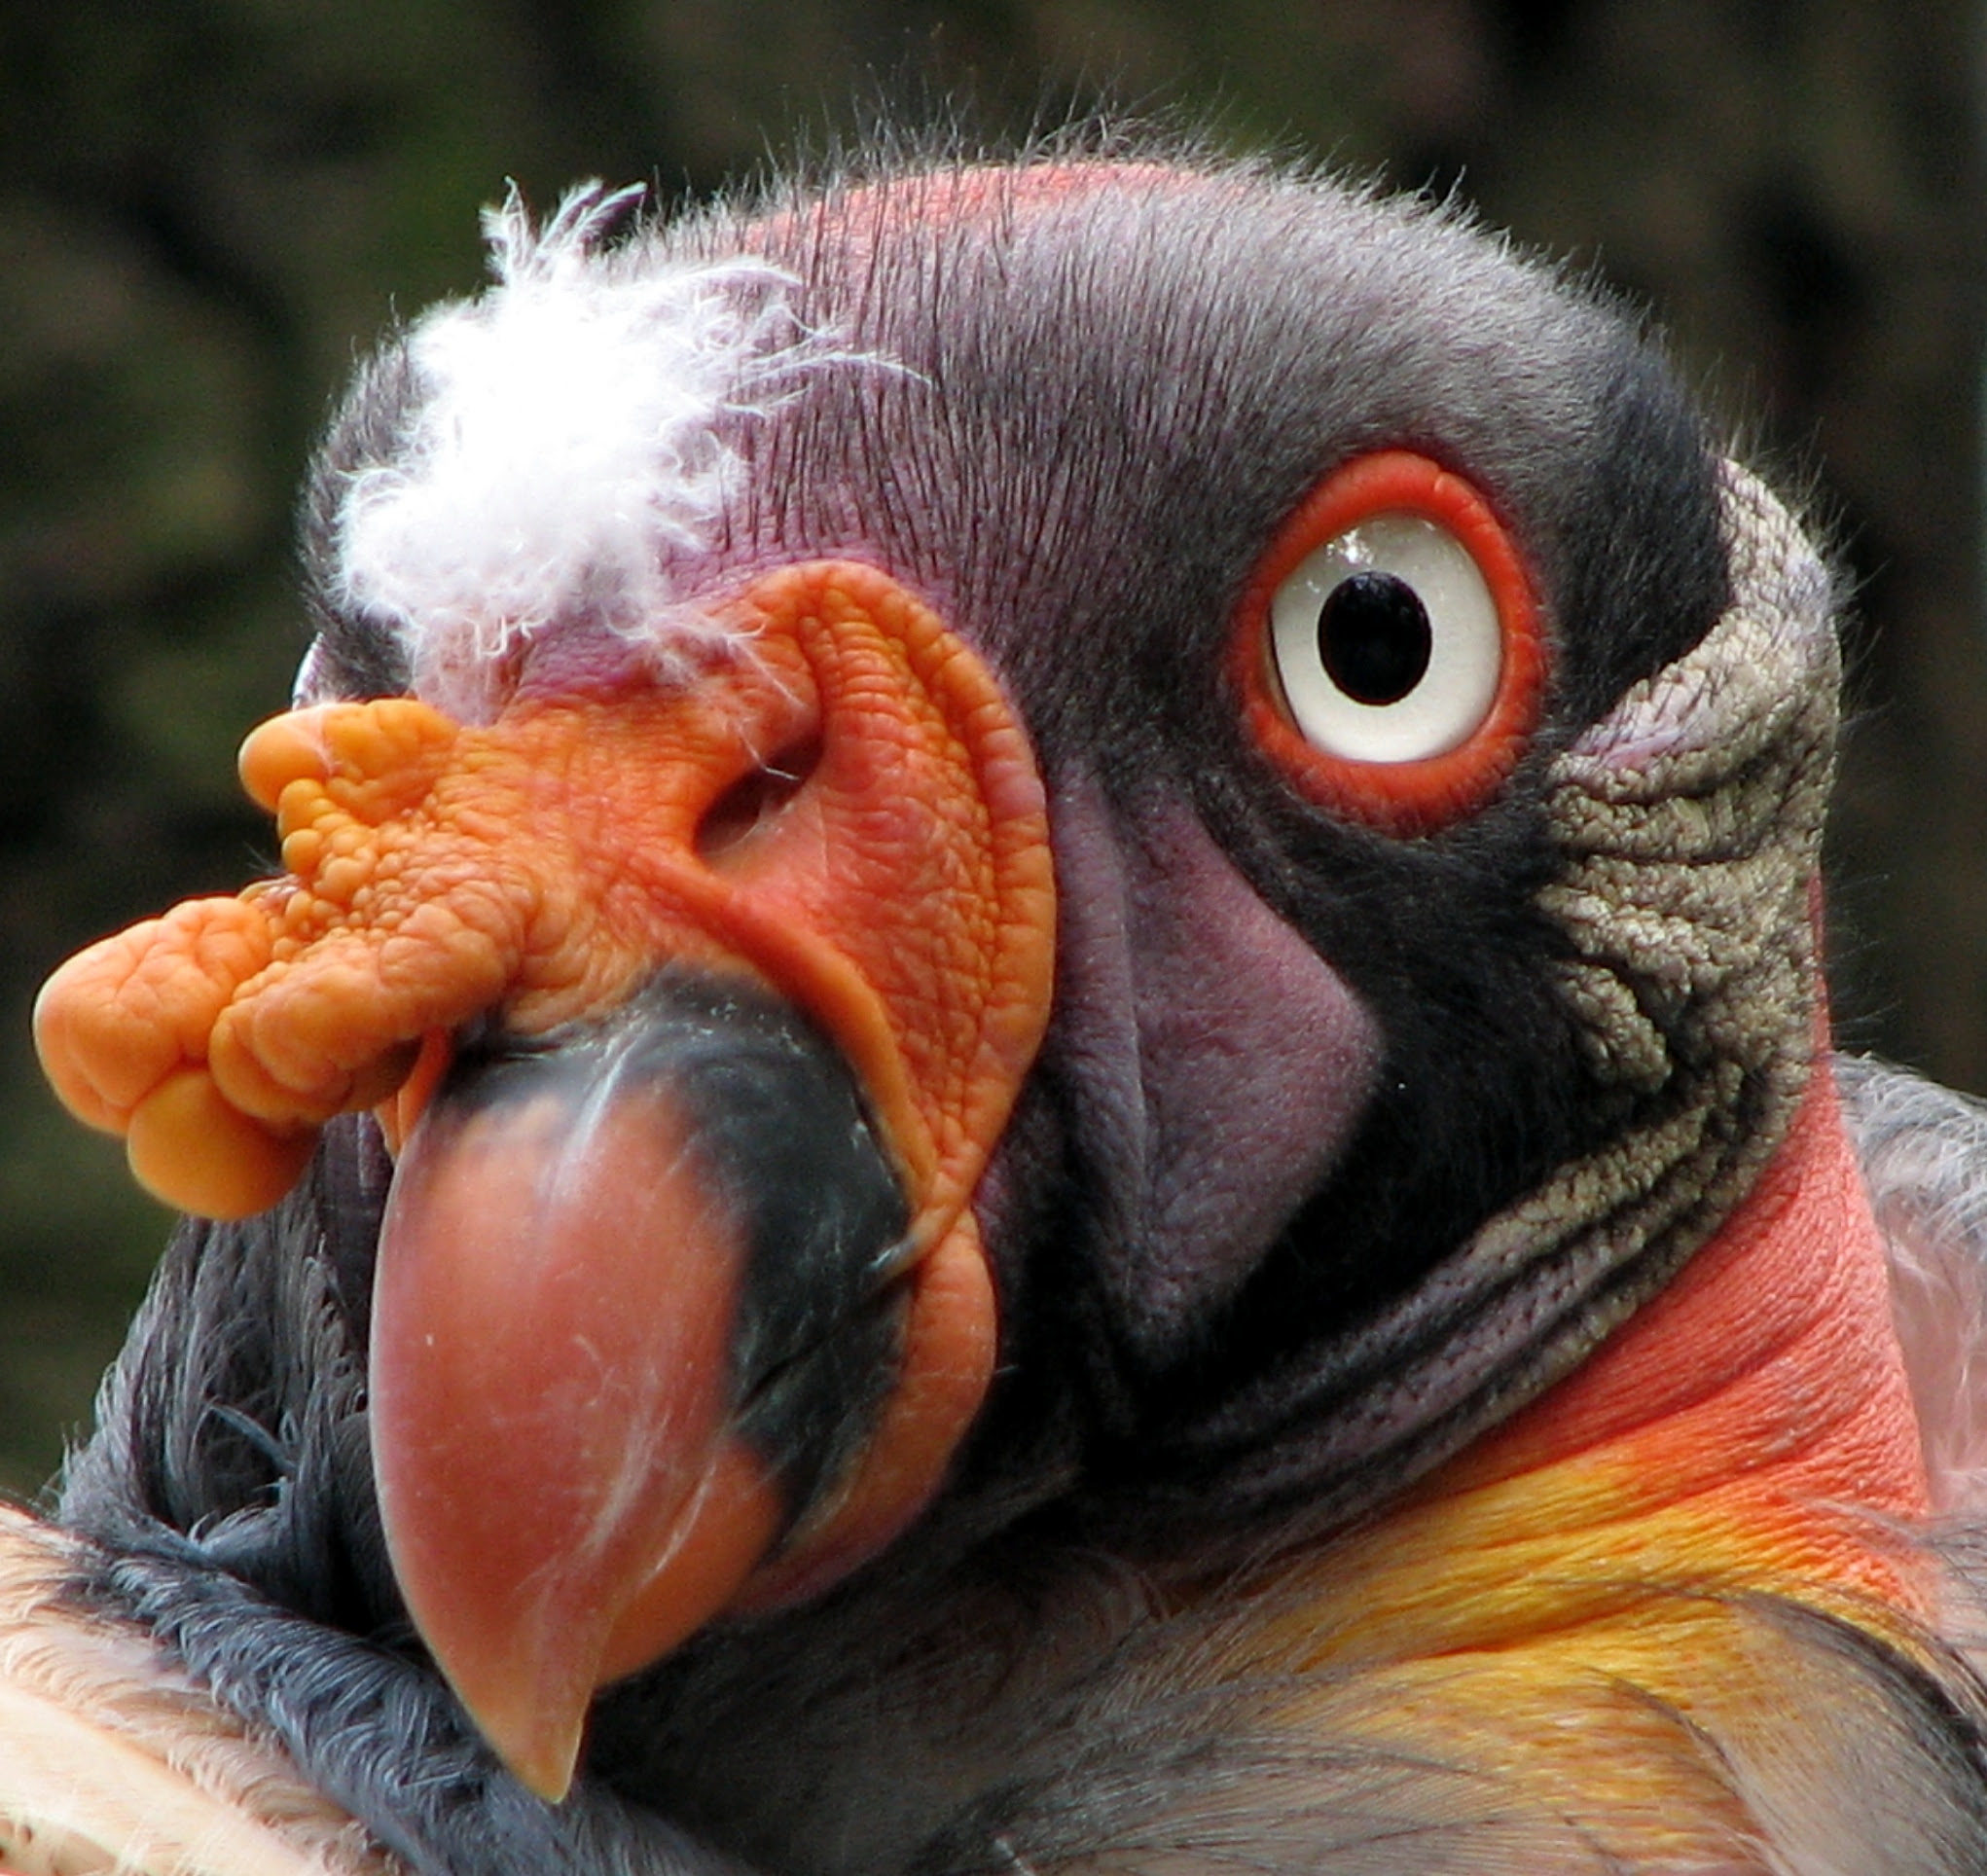 http://upload.wikimedia.org/wikipedia/commons/5/52/Sarcoramphus-papa-king-vulture-closeup-0a.jpg